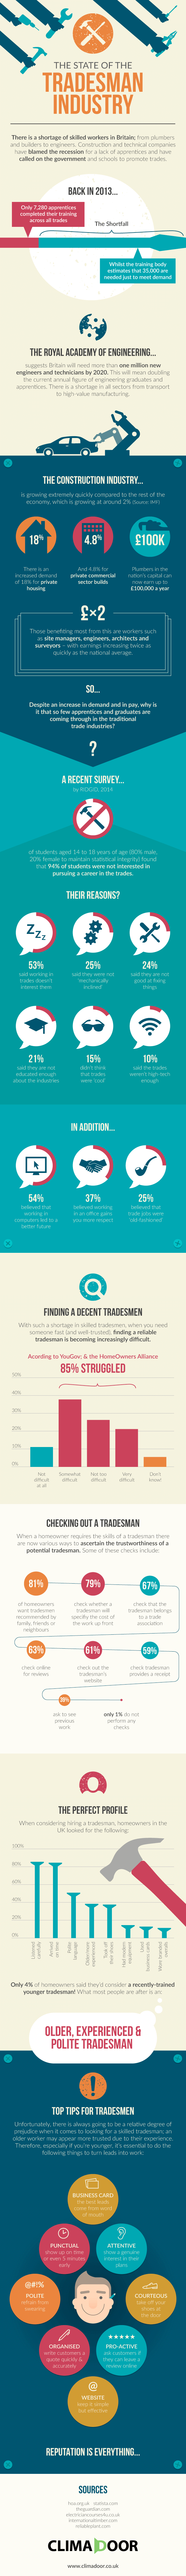 Tradesman industry infographic